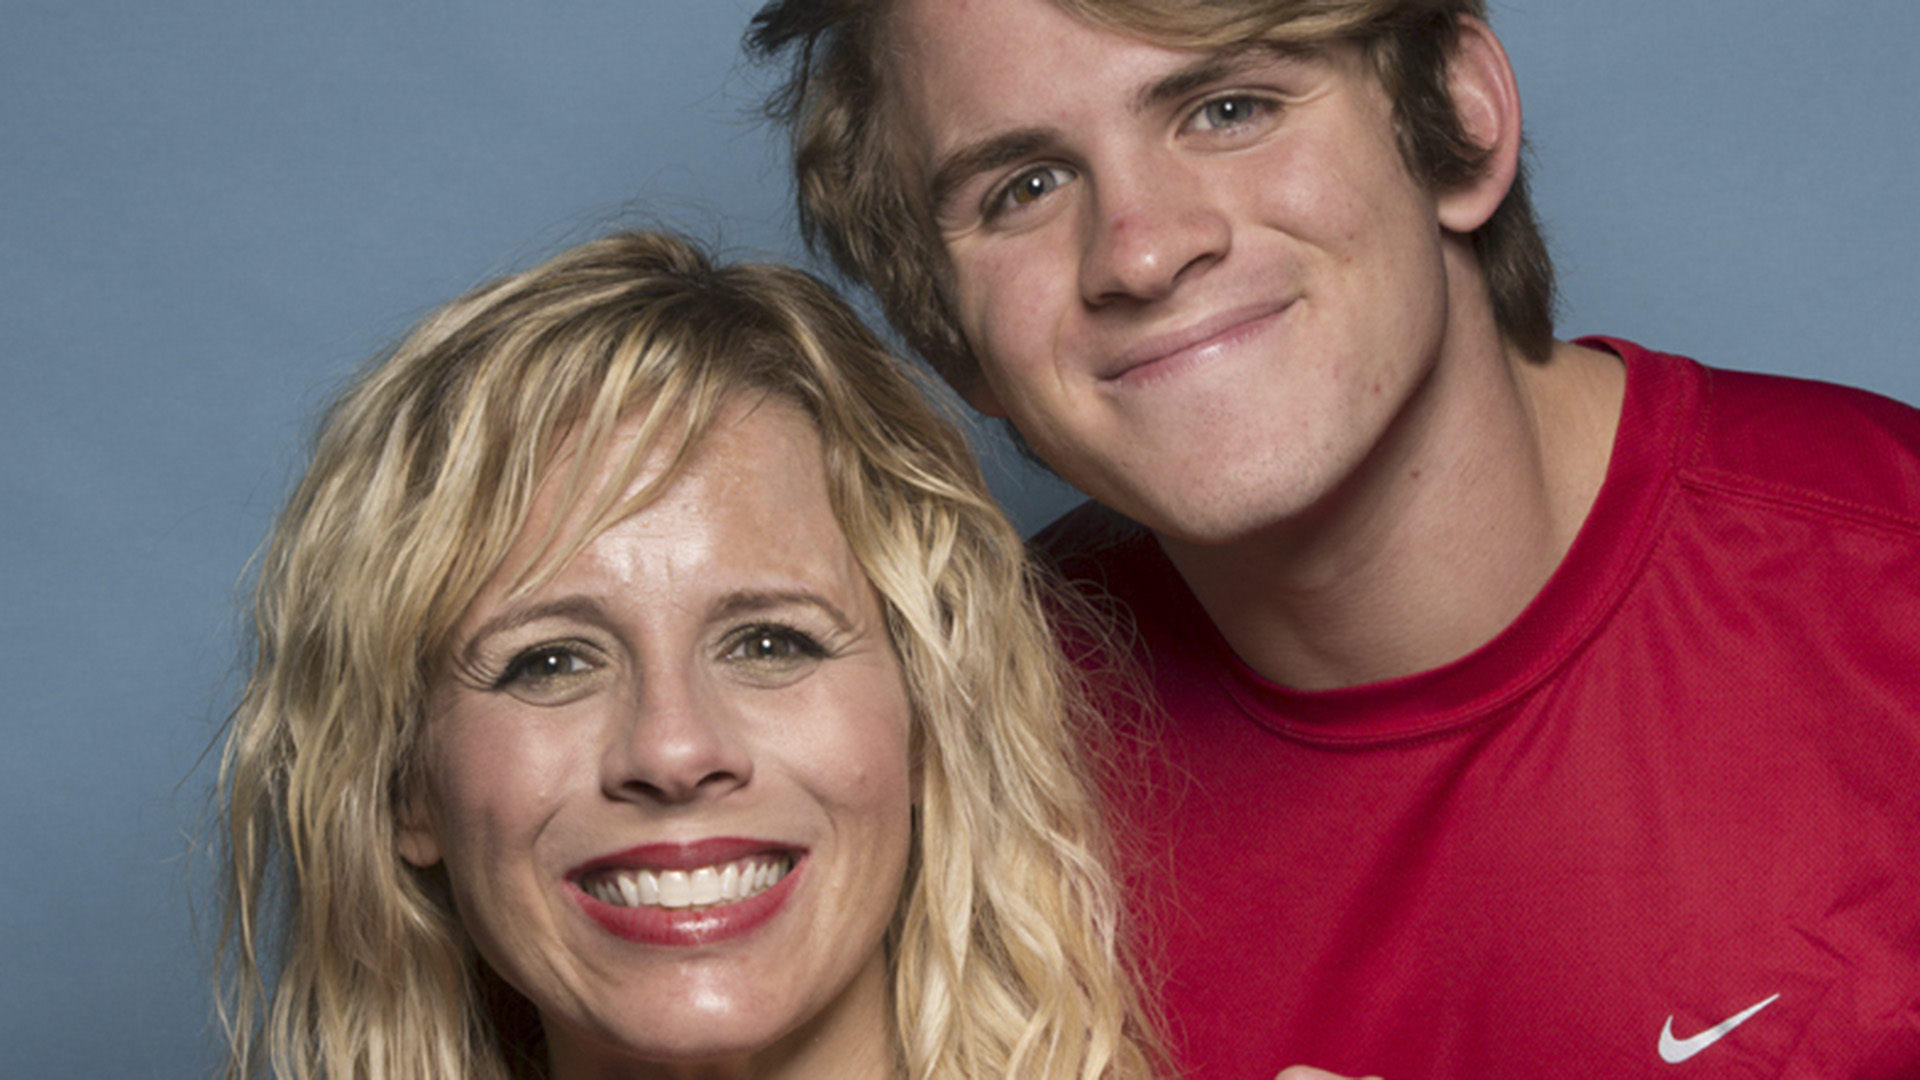 Sheri and Cole come in second place on Season 28 of The Amazing Race.